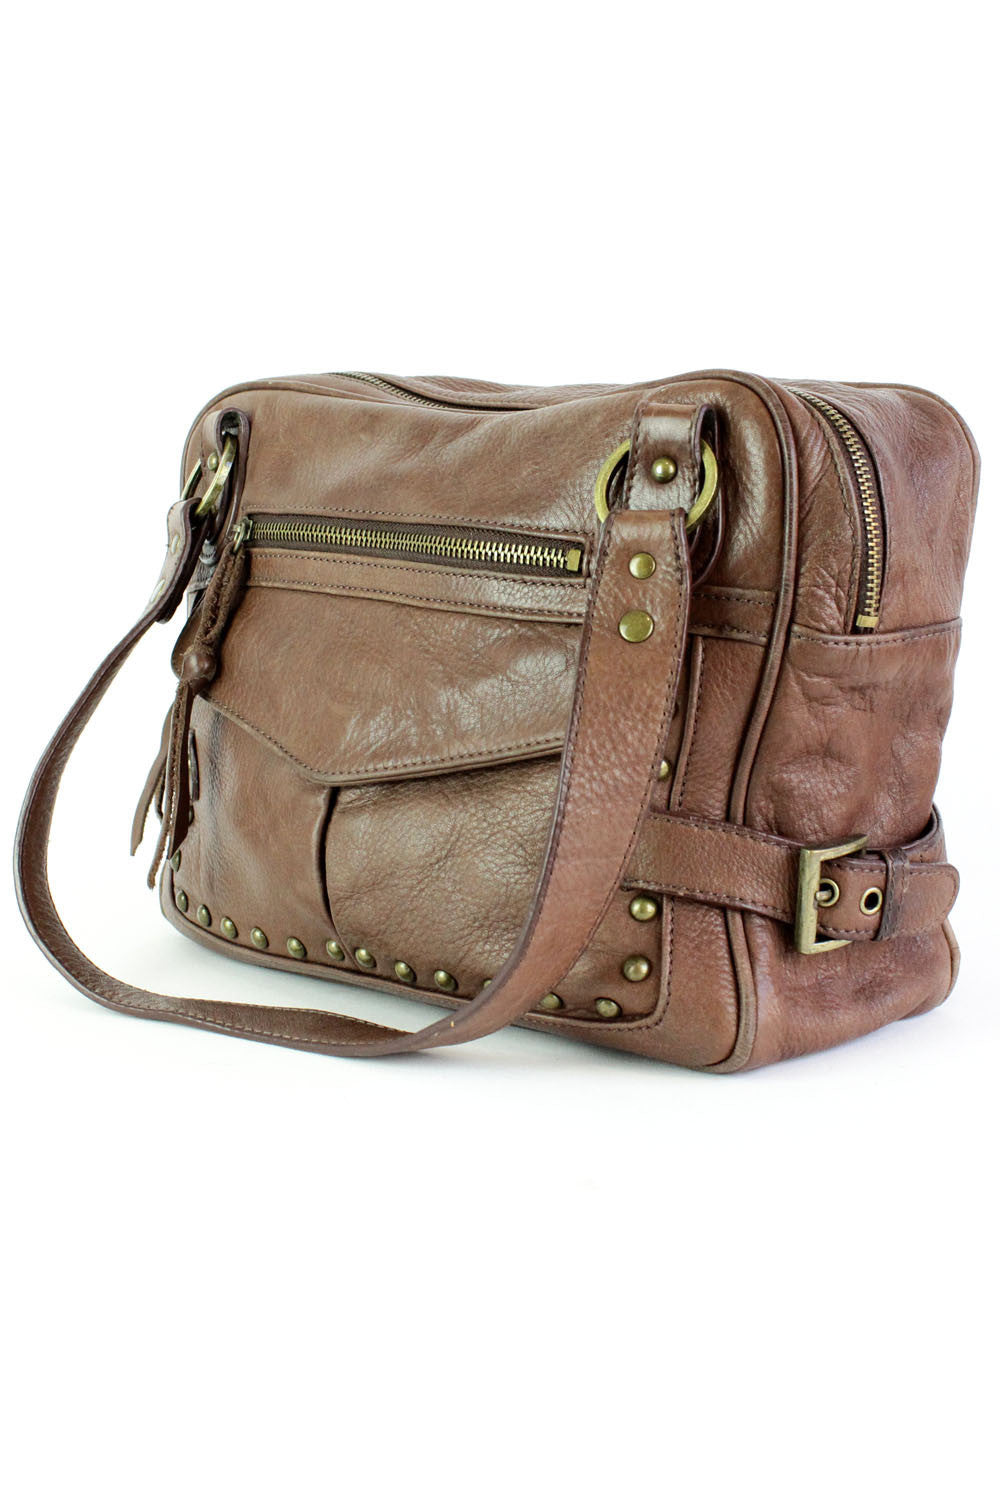 brown leather large handbag